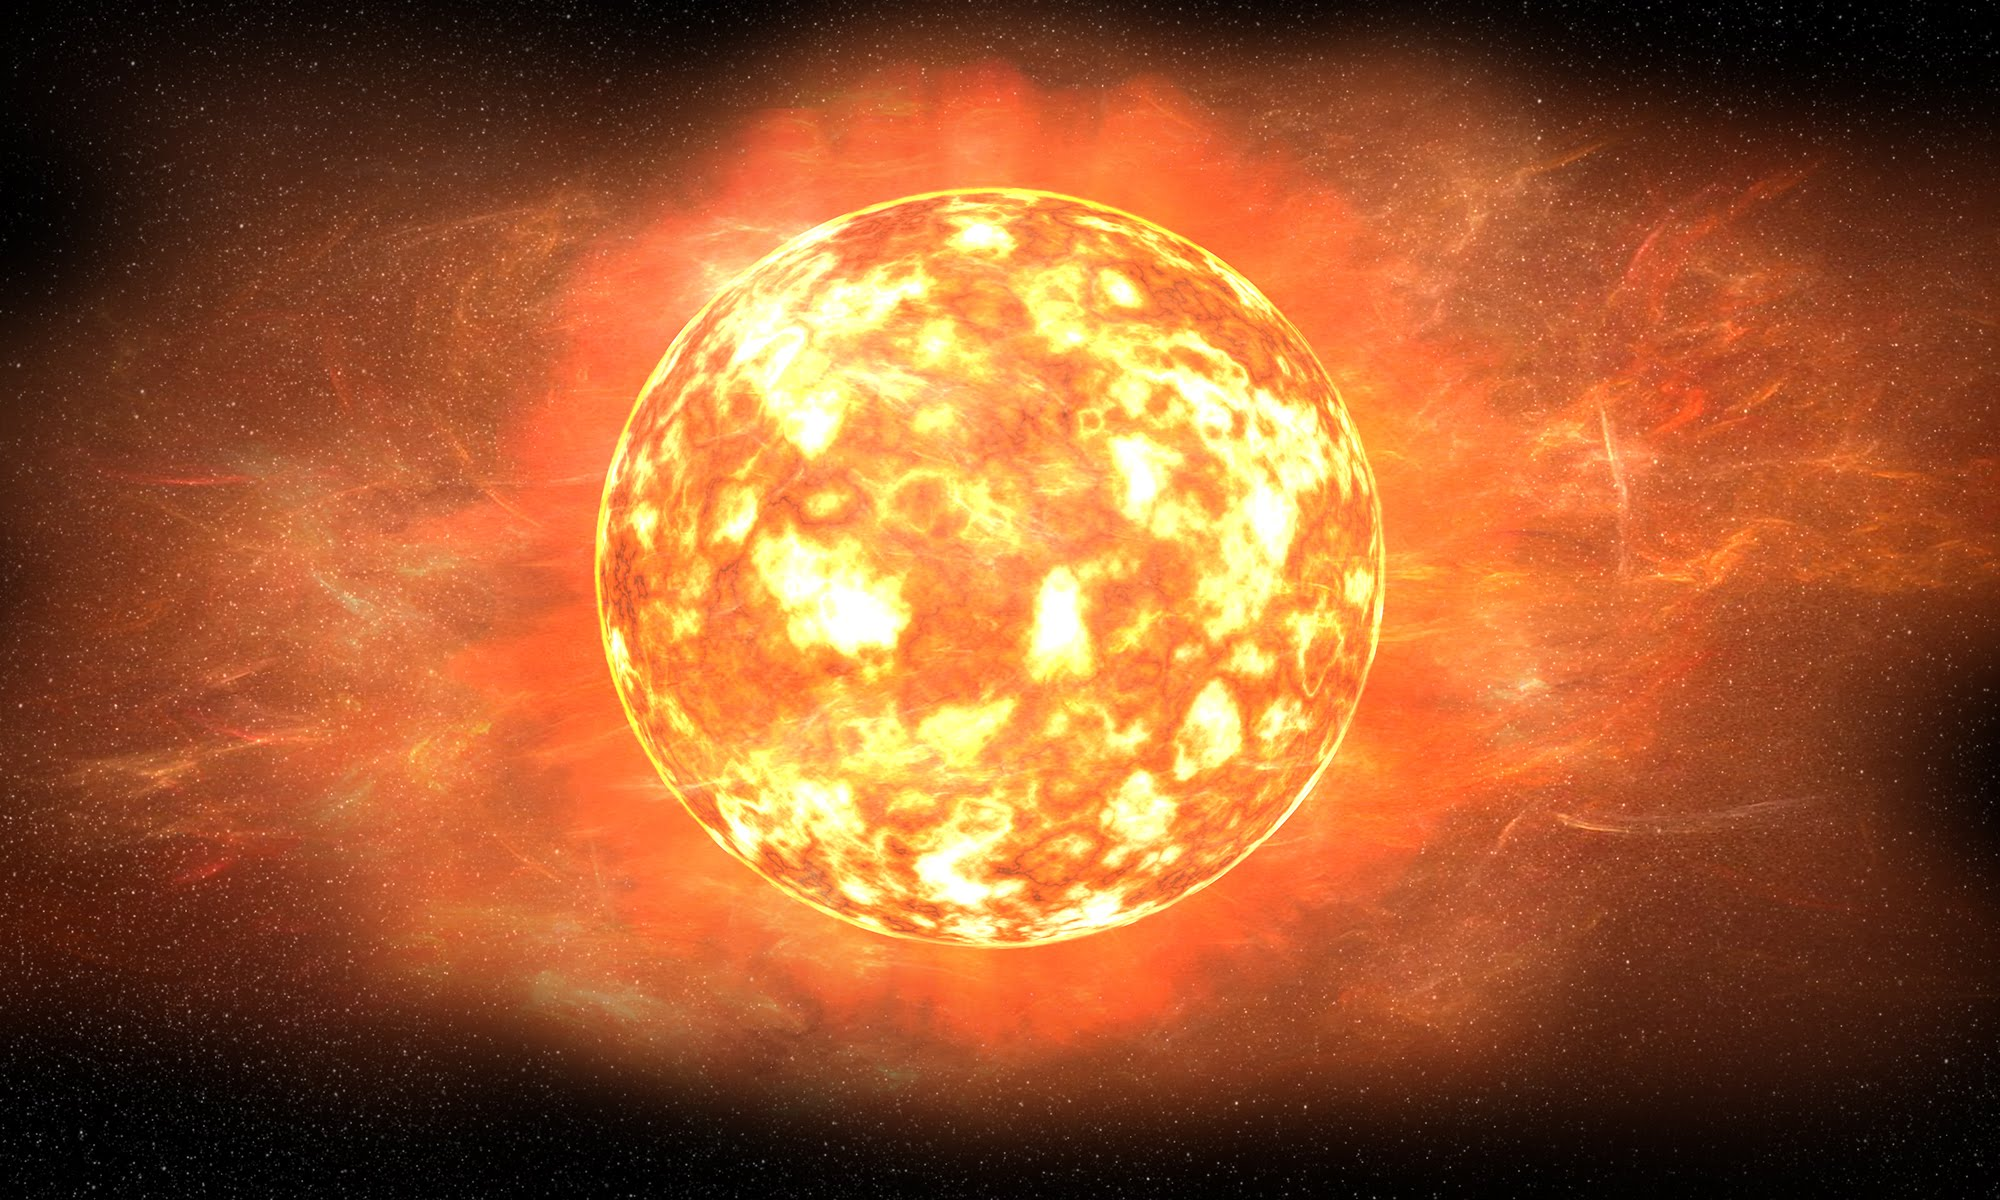 red giant star - HD2000×1200